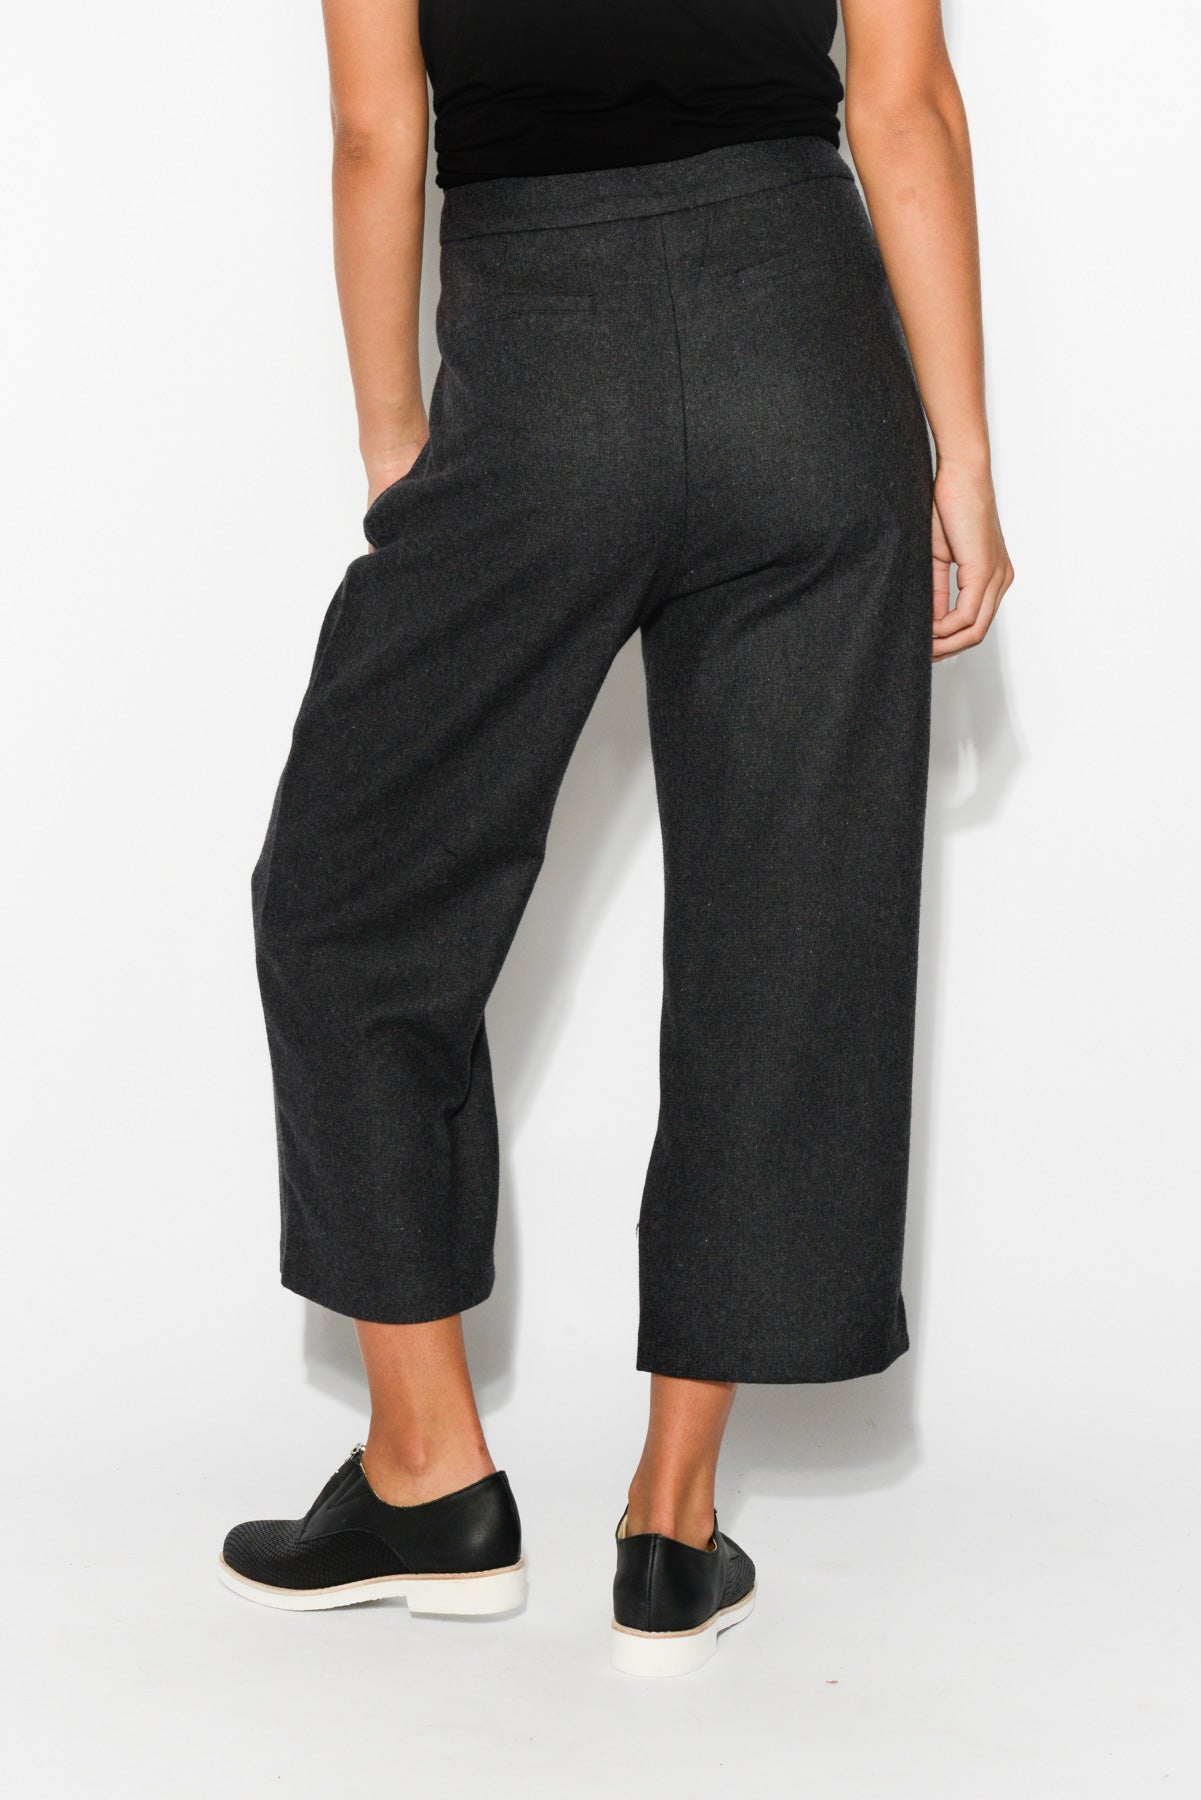 Georgia Charcoal Wool Blend Pant - Blue Bungalow